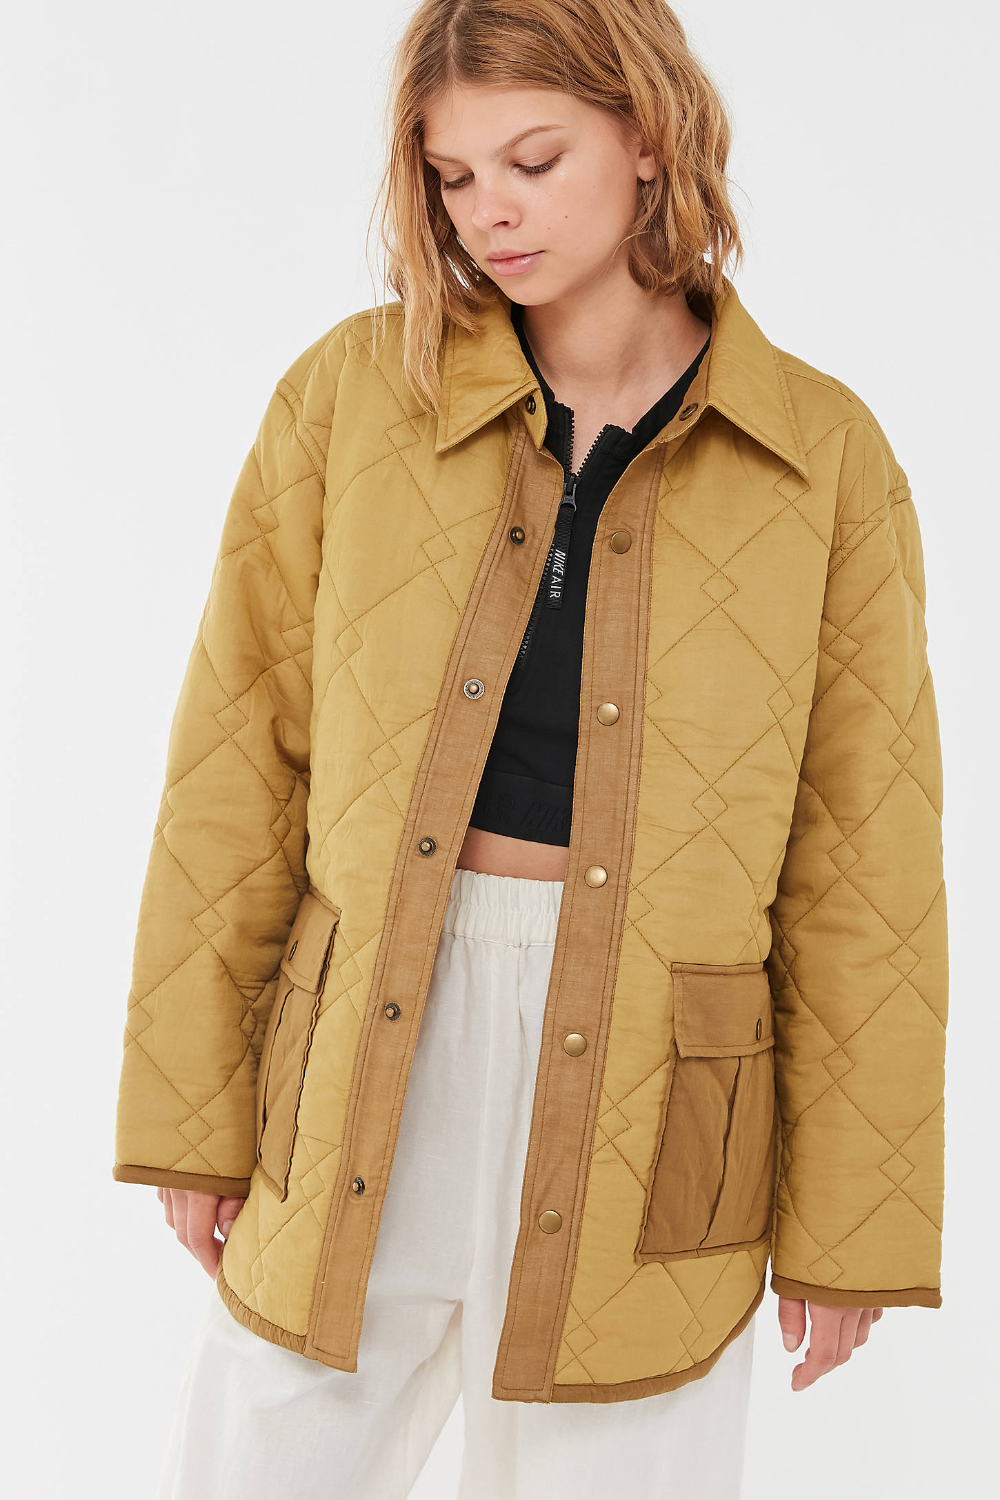 Uo Lita Quilted Shirt Jacket Urban Outfitters Shirt Jacket Quilt Shirt Jackets [ 1500 x 1000 Pixel ]